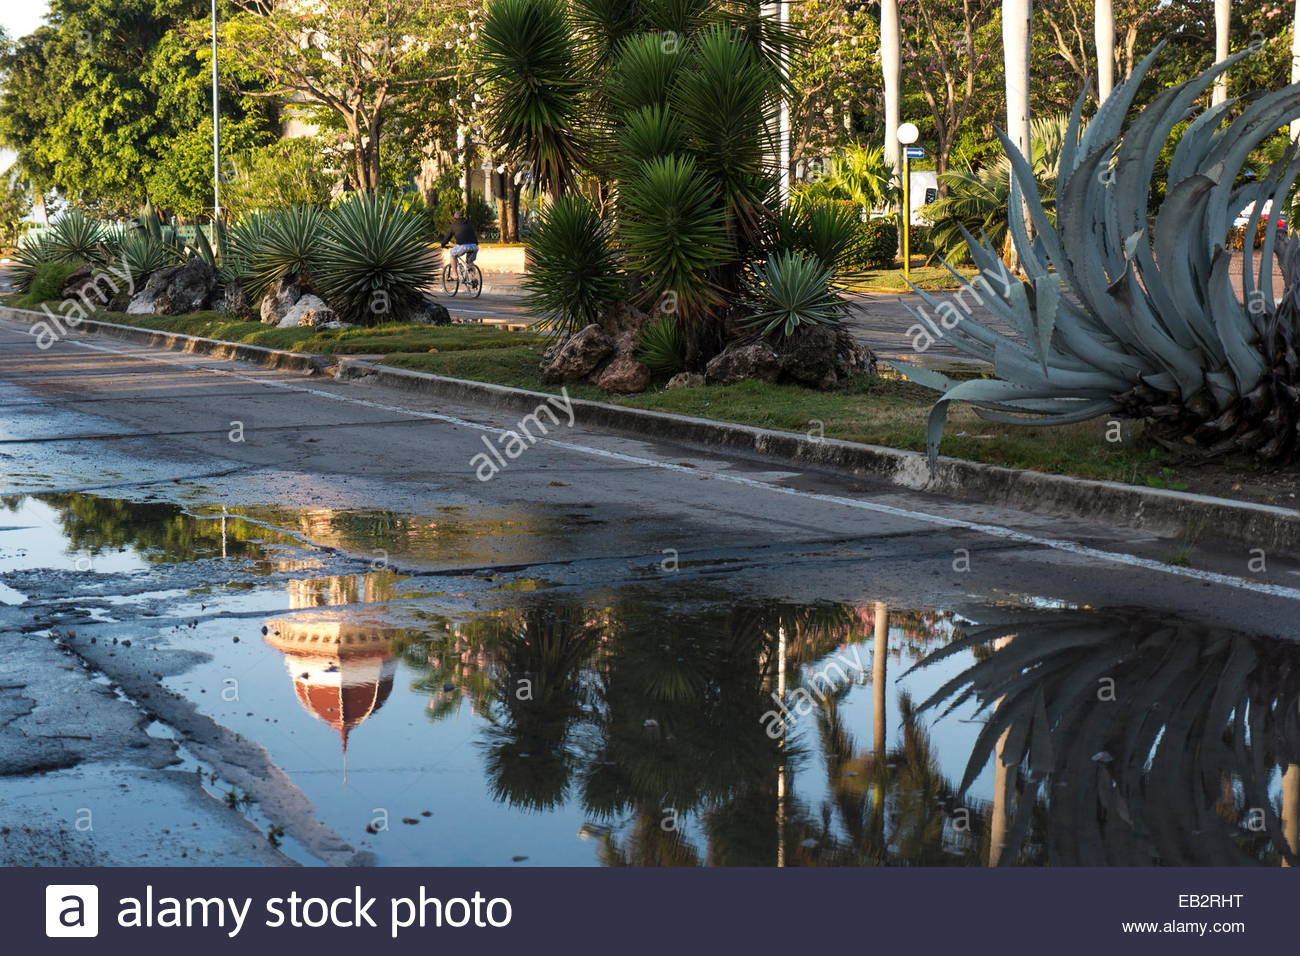 Early morning after a rainstorm, puddles in the street reflect the Palacio del Valle. - Stock Image